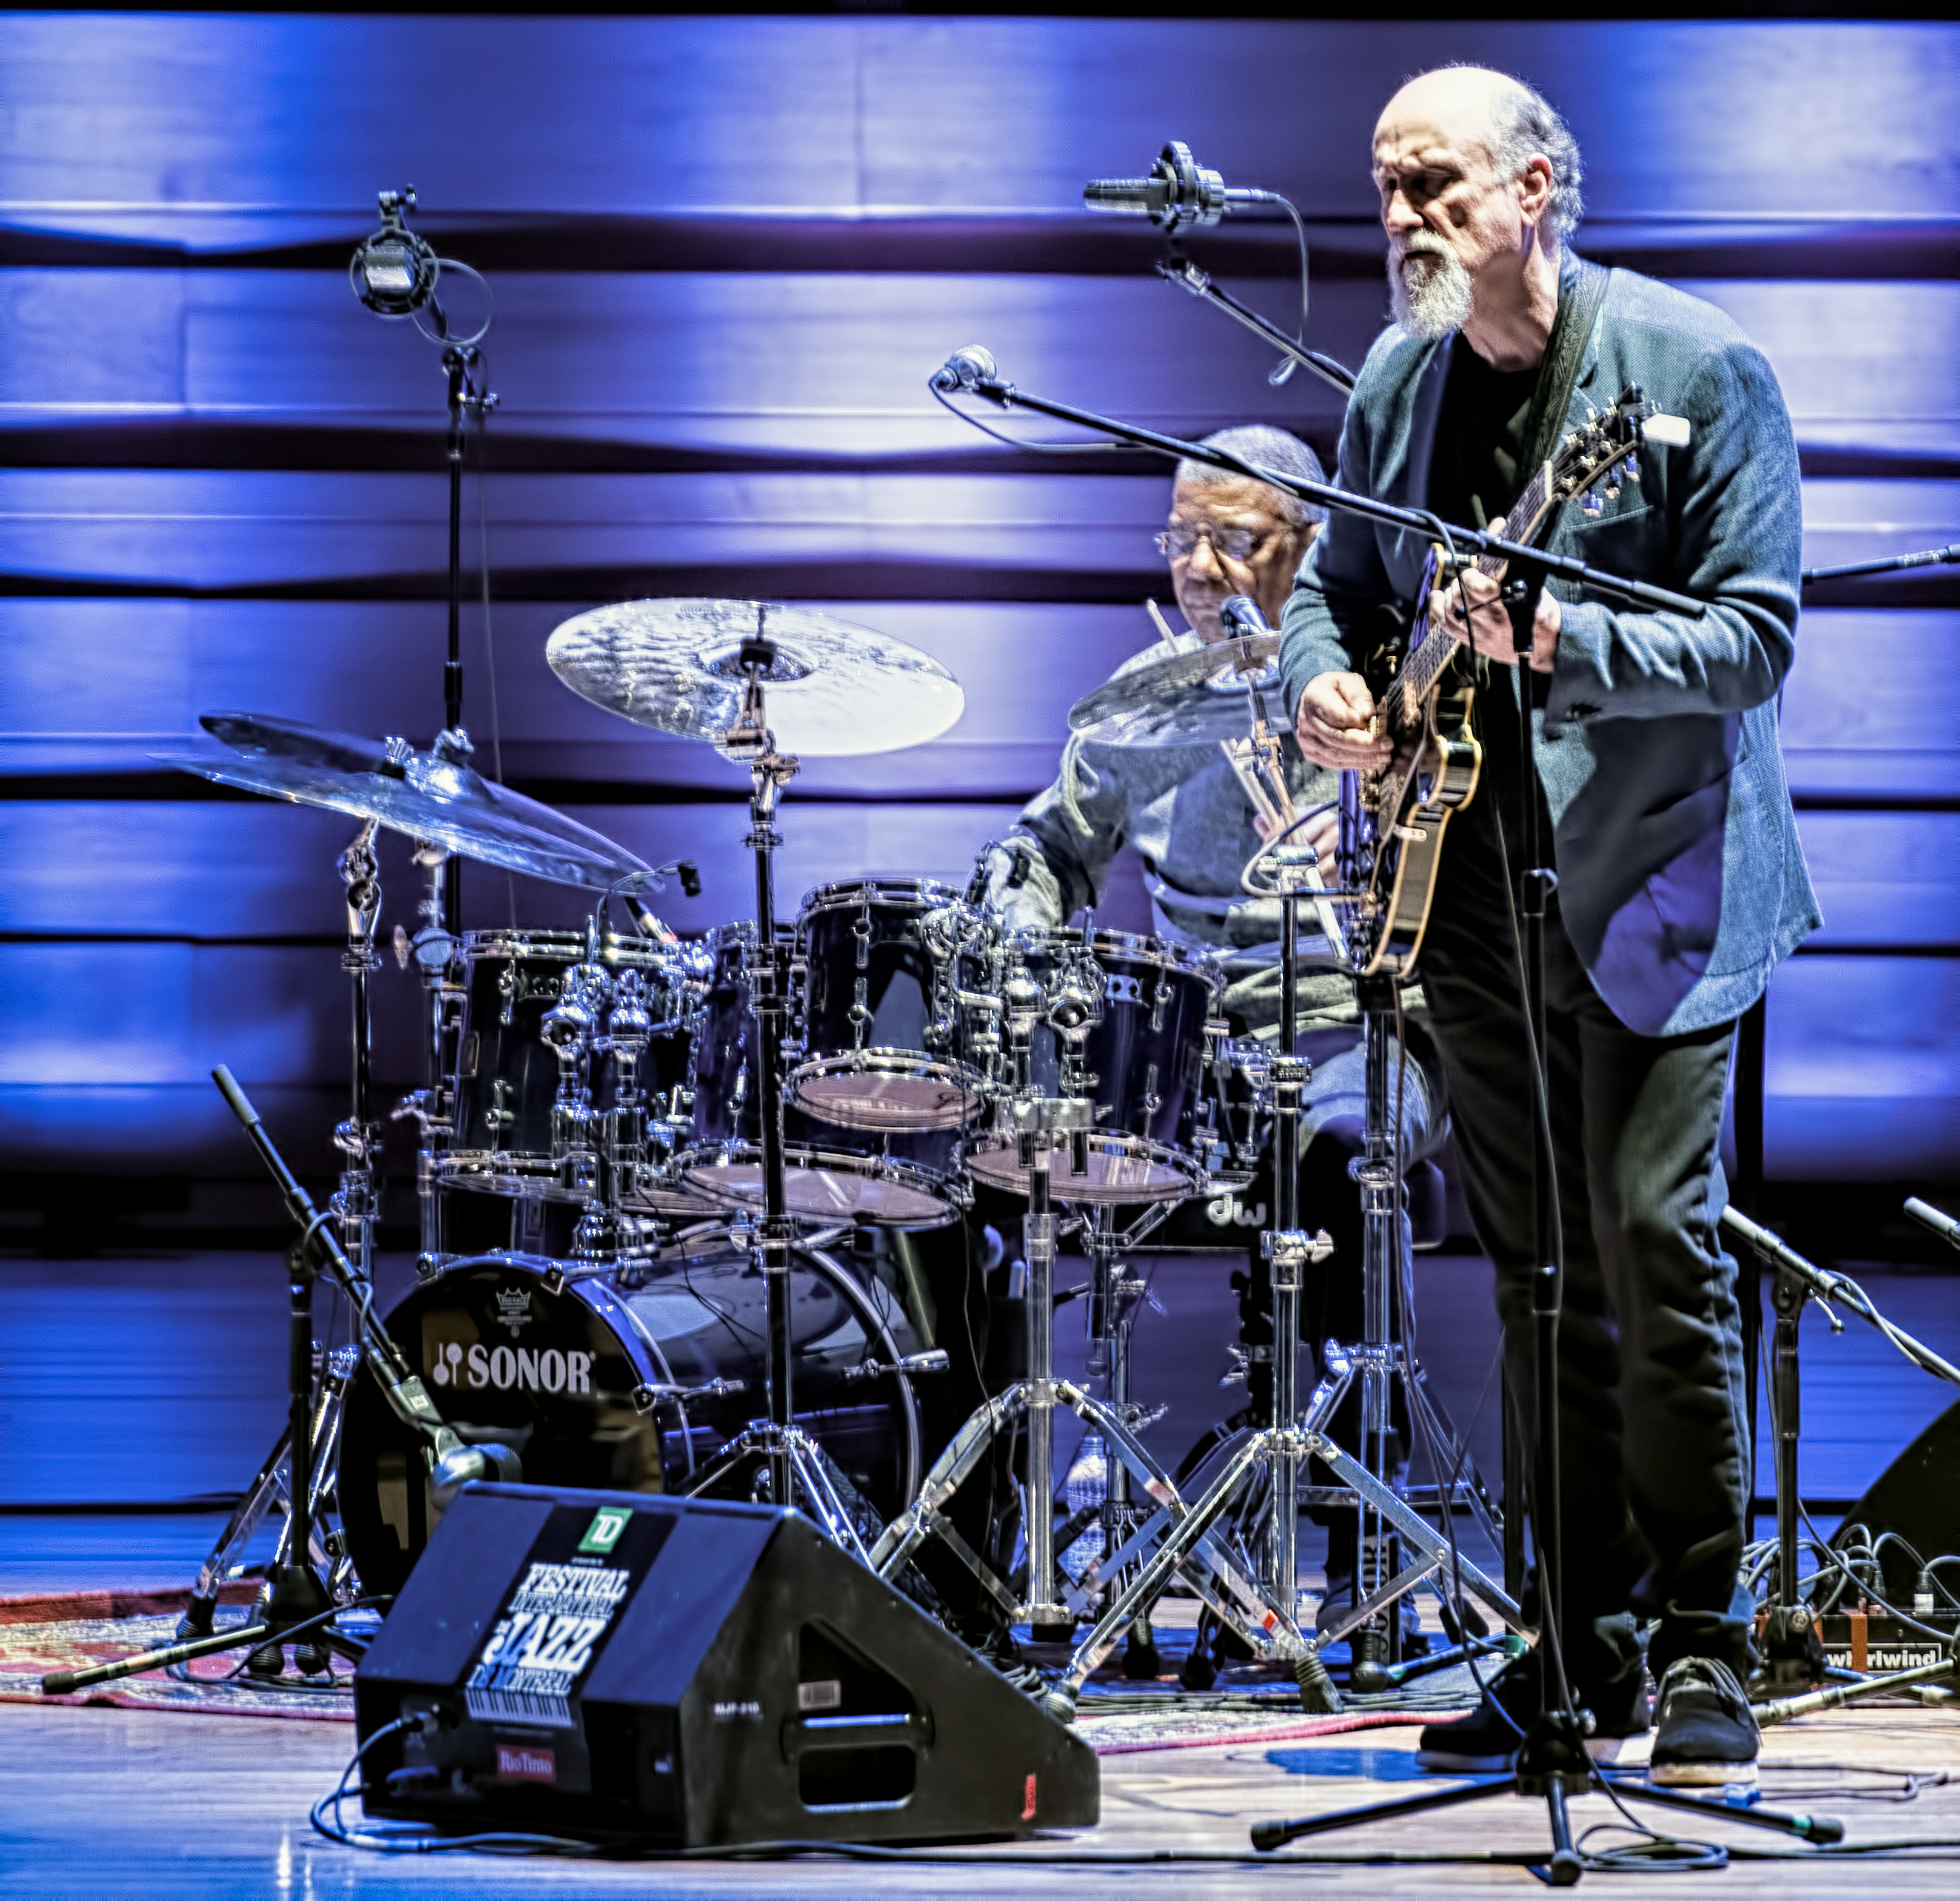 Jack Dejohnette and John Scofield with Hudson at The Montreal International Jazz Festival 2017